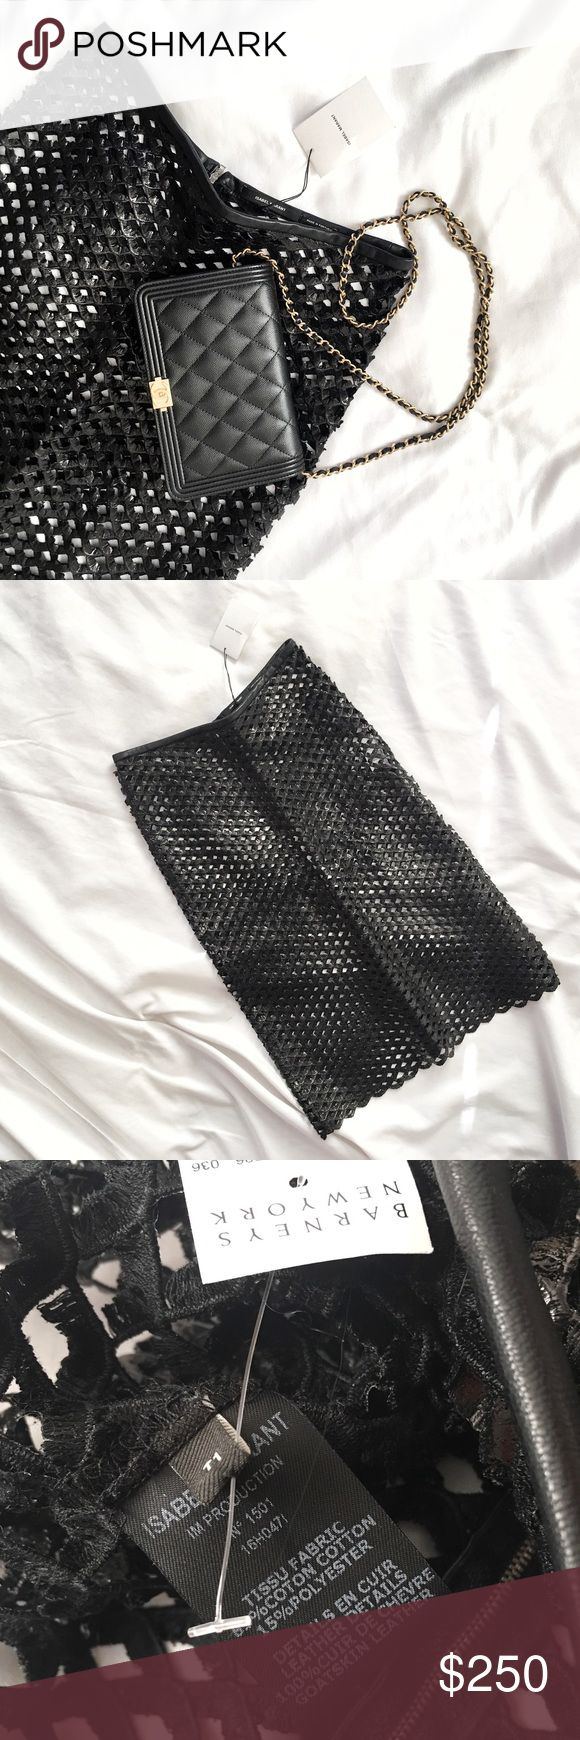 """Isabel Marant Runway Leather Skirt Always Authentic🌸 Runways collection purchased at Barney's sample sale for $425! Vegan leather fishnet skirt w/ Goatskin leather trim detail. Tag reads T1: fits sizes S-M (best fits size US 4-6) depending on the desired fit. Approx measures: 27""""length, 14.5""""waist, 18""""hip: some/very little stretch. *I personally style all pics, NO MODELING* All FINAL PRICEs listed. Bundle &save even more✅ Isabel Marant Skirts Midi"""